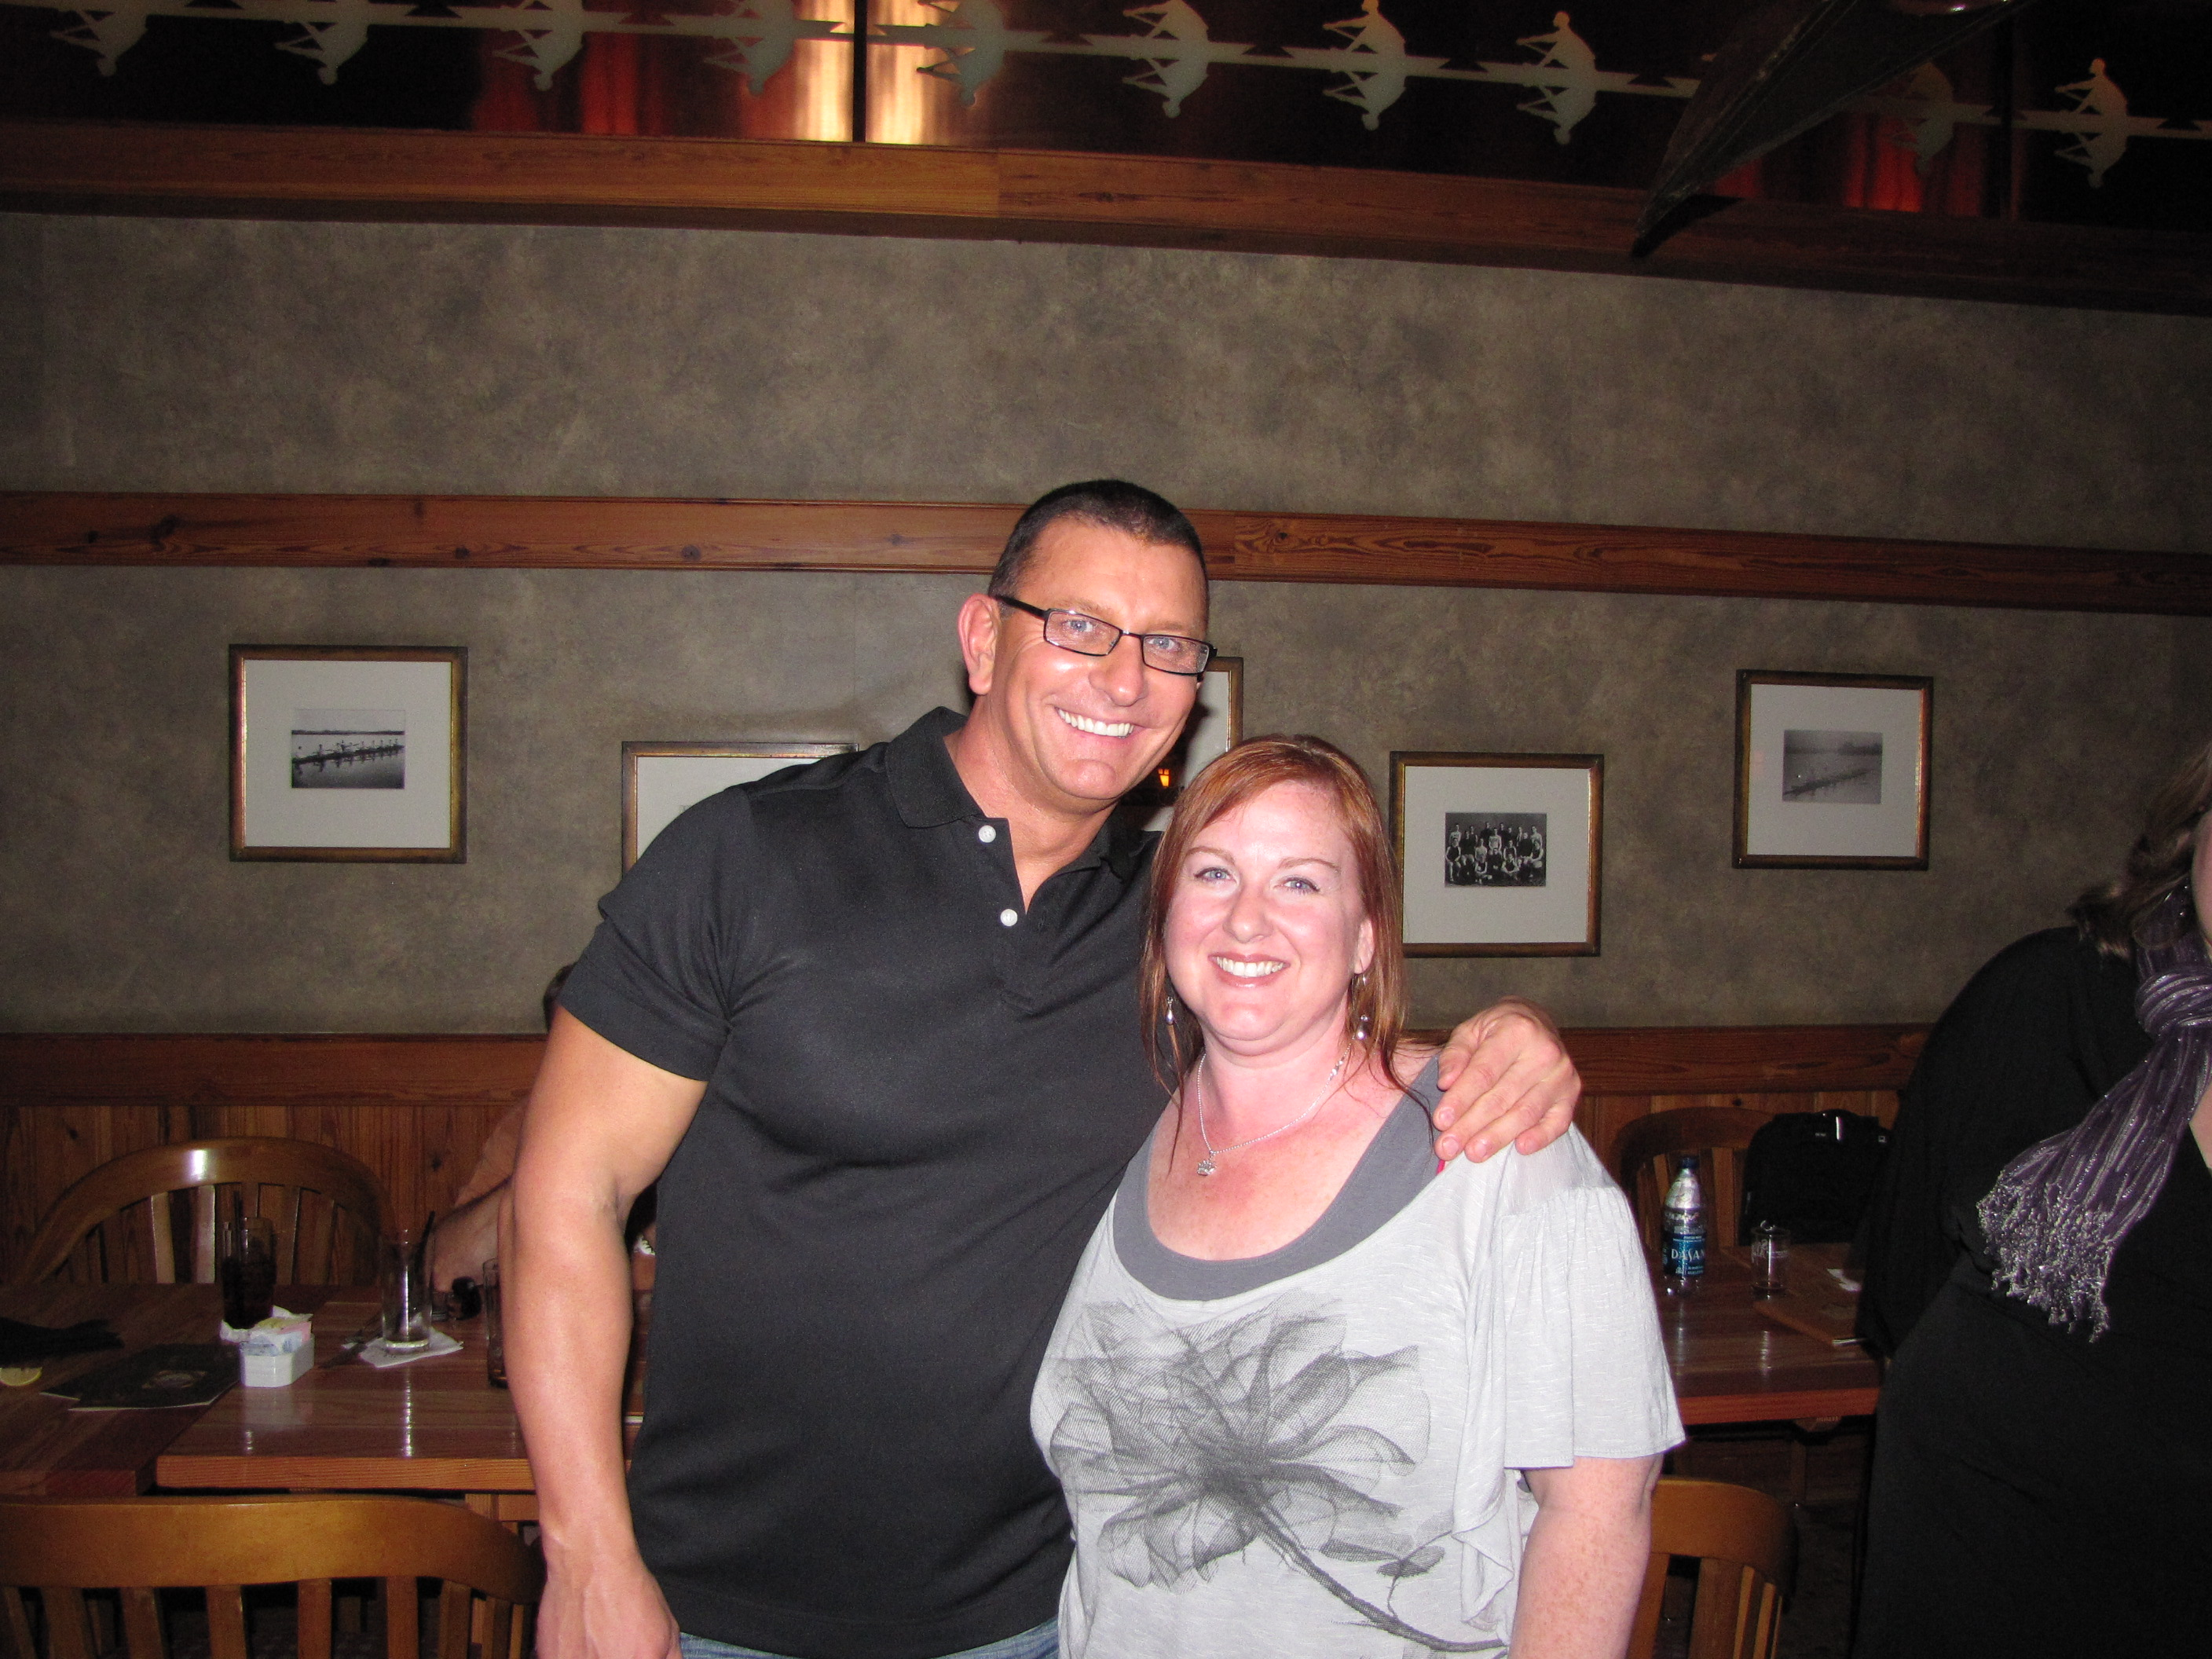 Chef Robert Irvine Loves Helping Others, Meeting Fans and DISNEY!